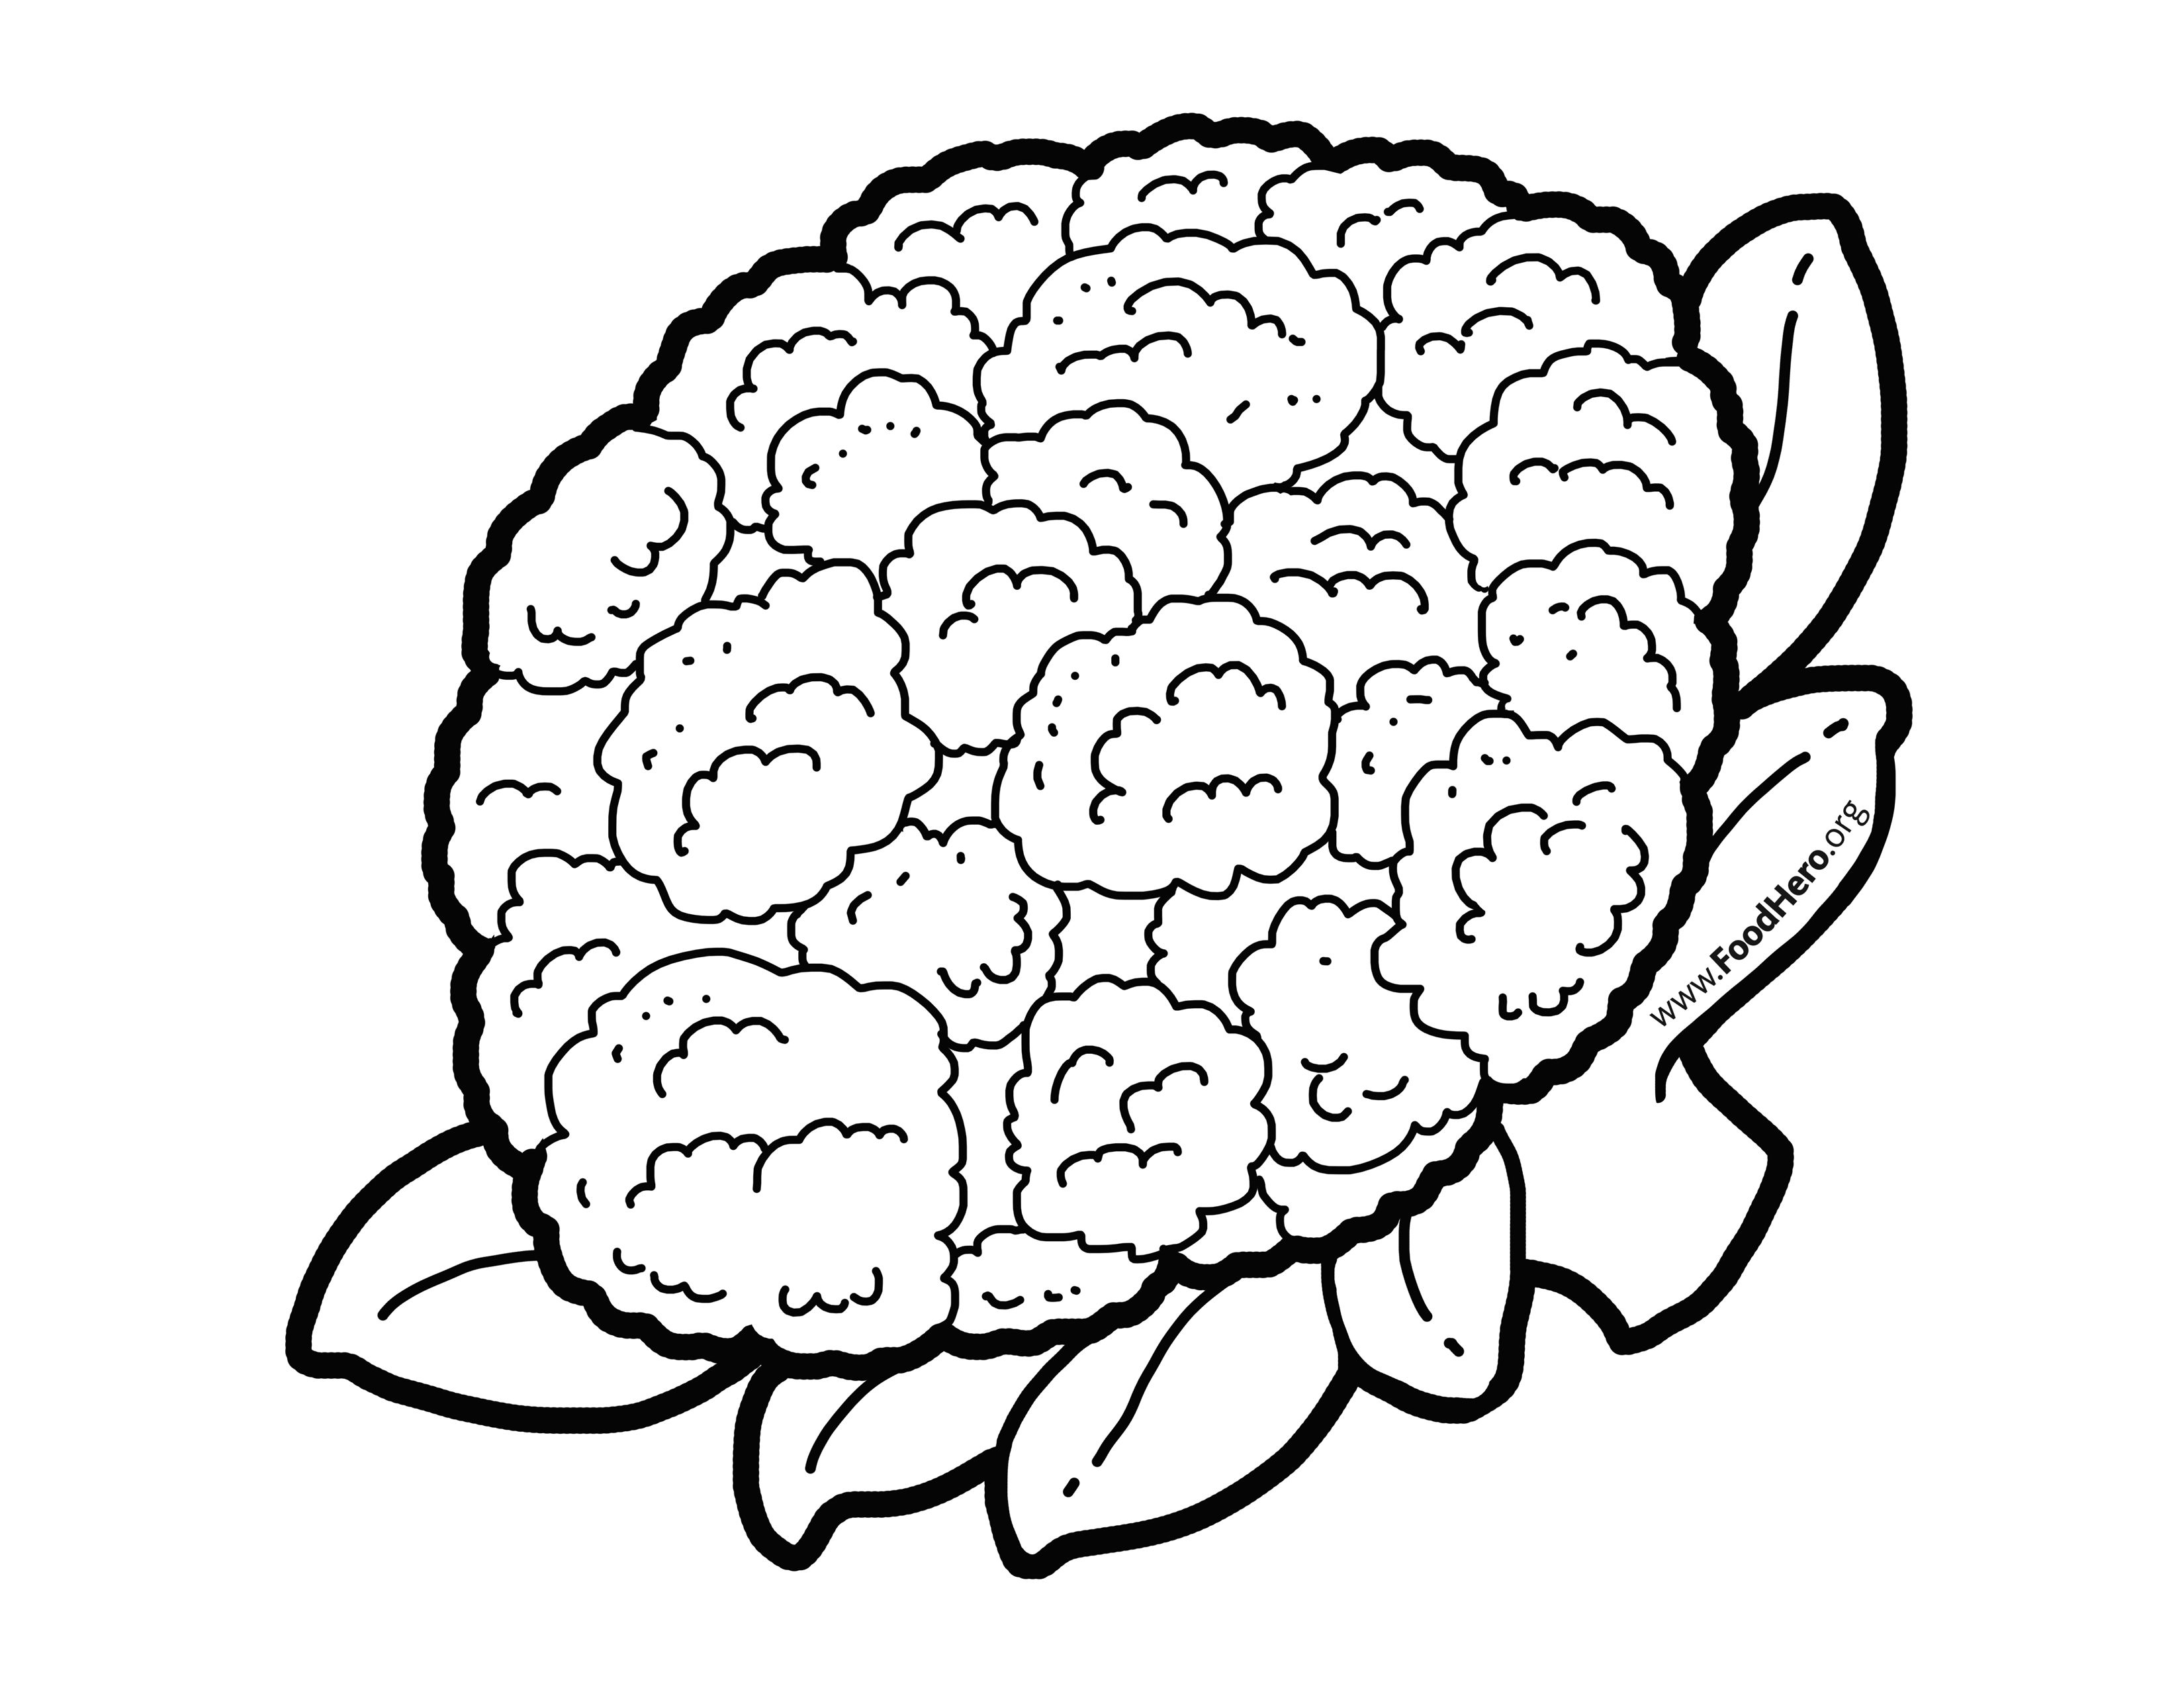 Cauliflower. Illustration found at foodhero.org.